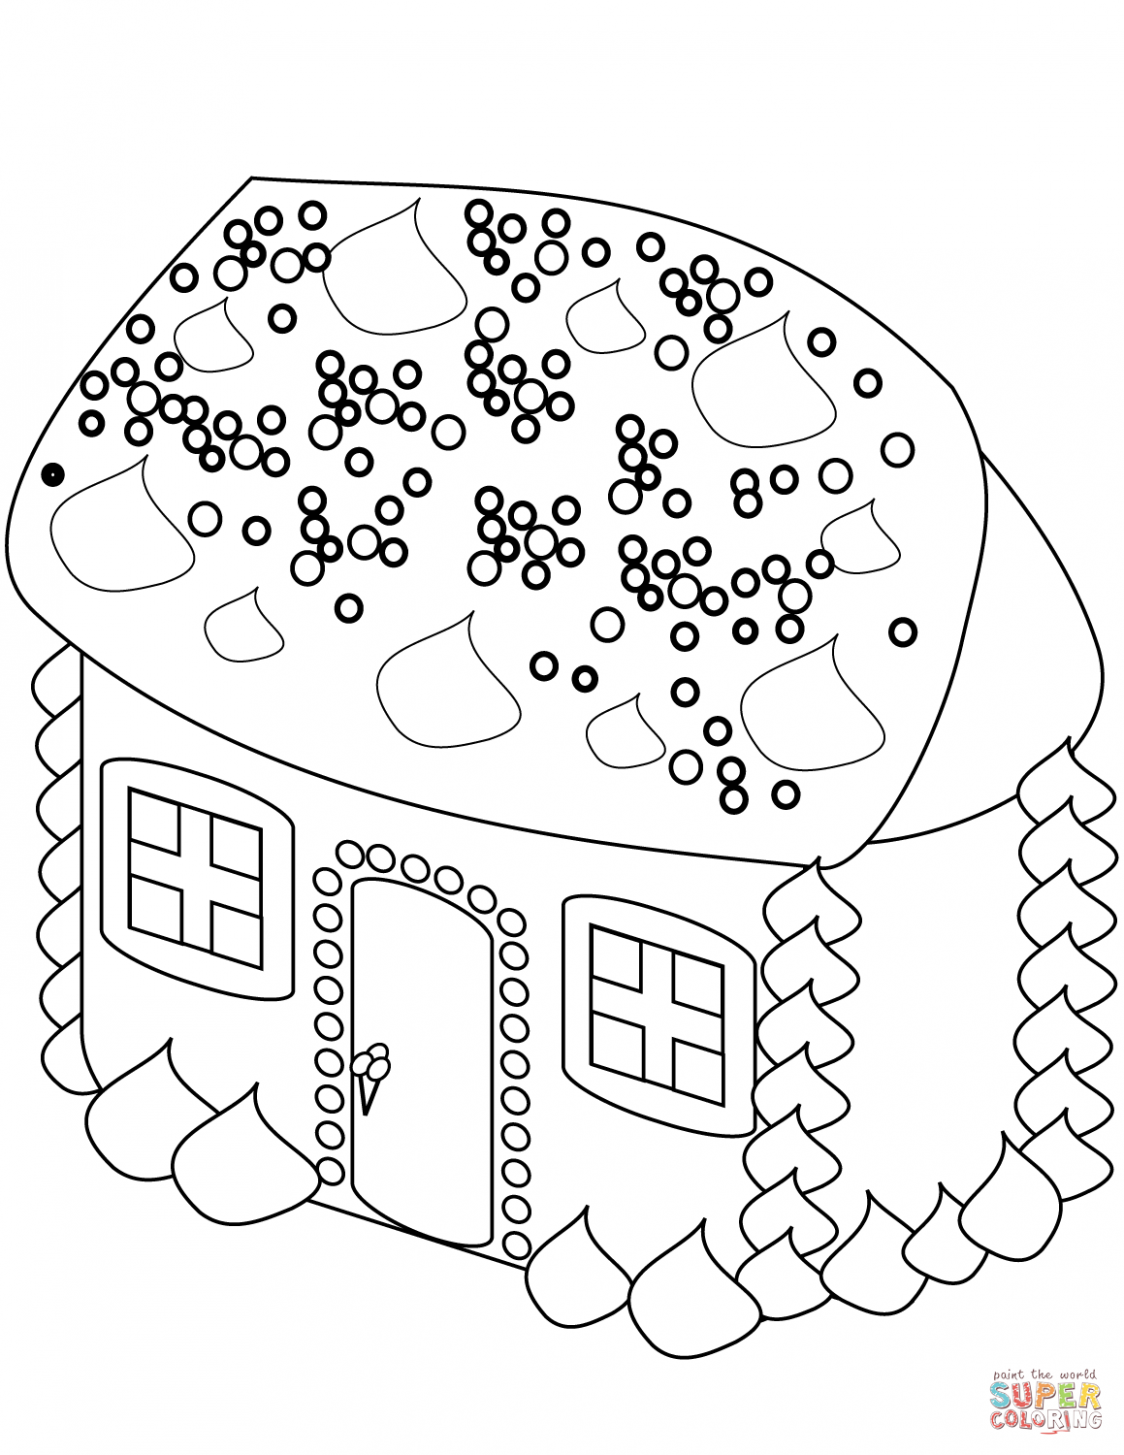 Gingerbread House coloring page | Free Printable Coloring Pages – Free Christmas Coloring Pages Gingerbread House